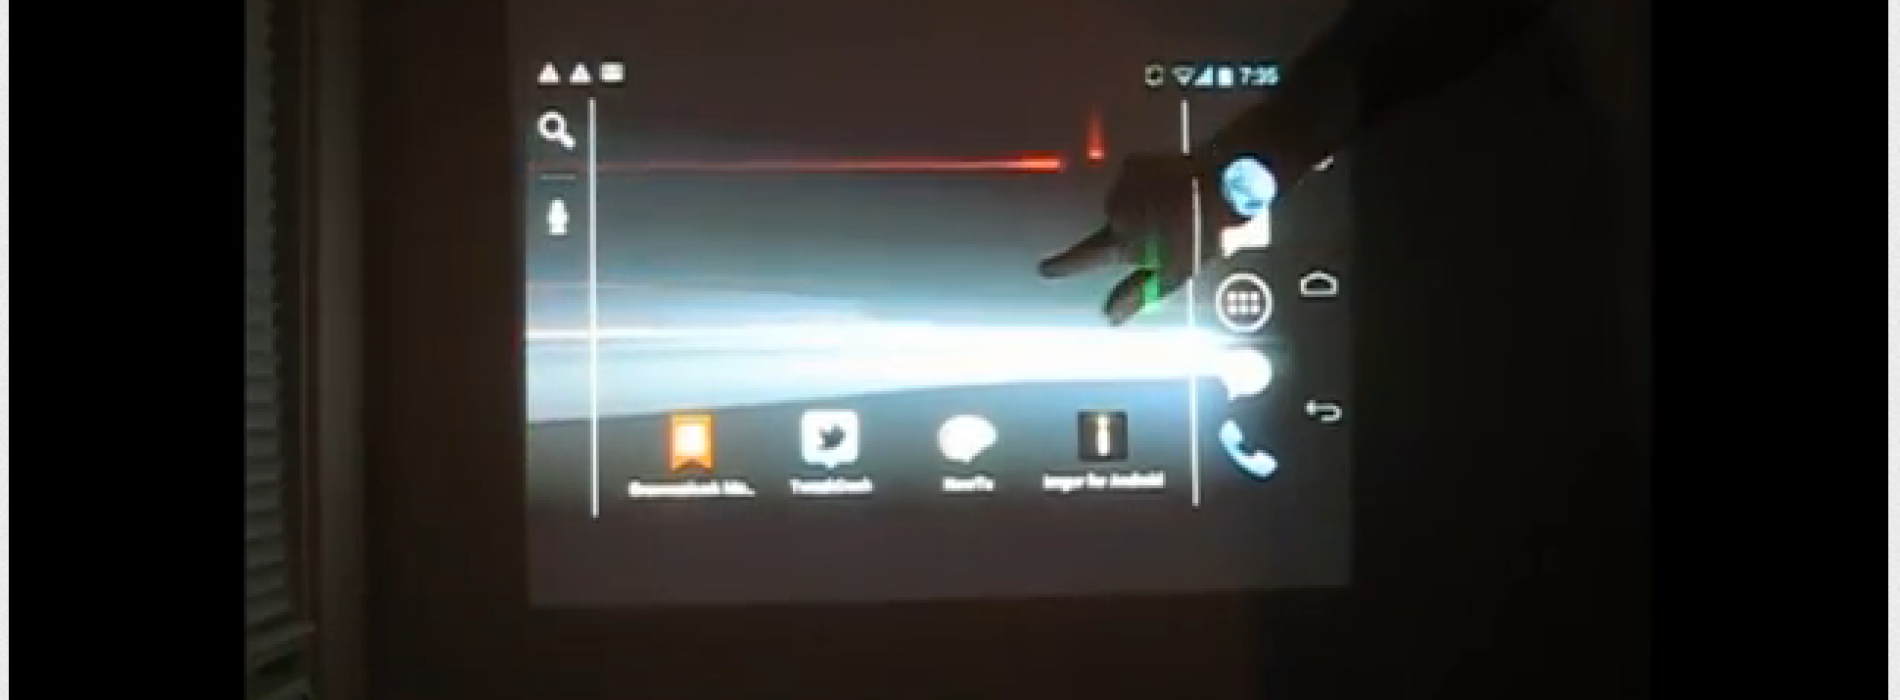 [Video] Kinect hacked to work on Android, includes proof of concept